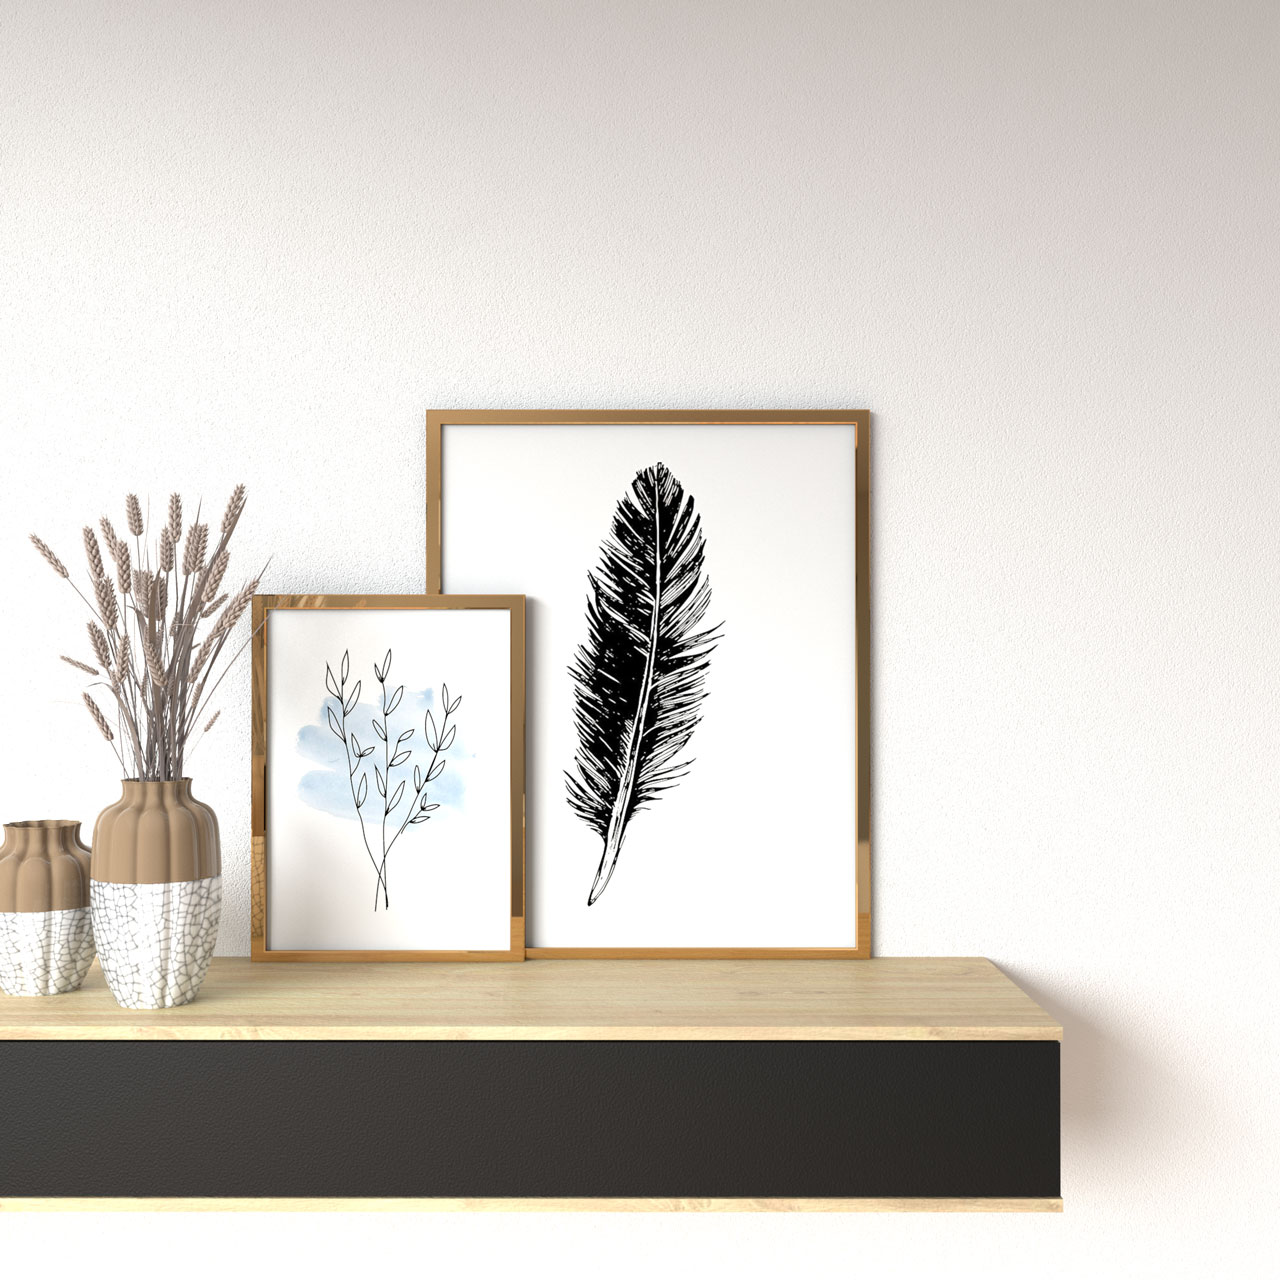 Plain white wall with gold picture frames